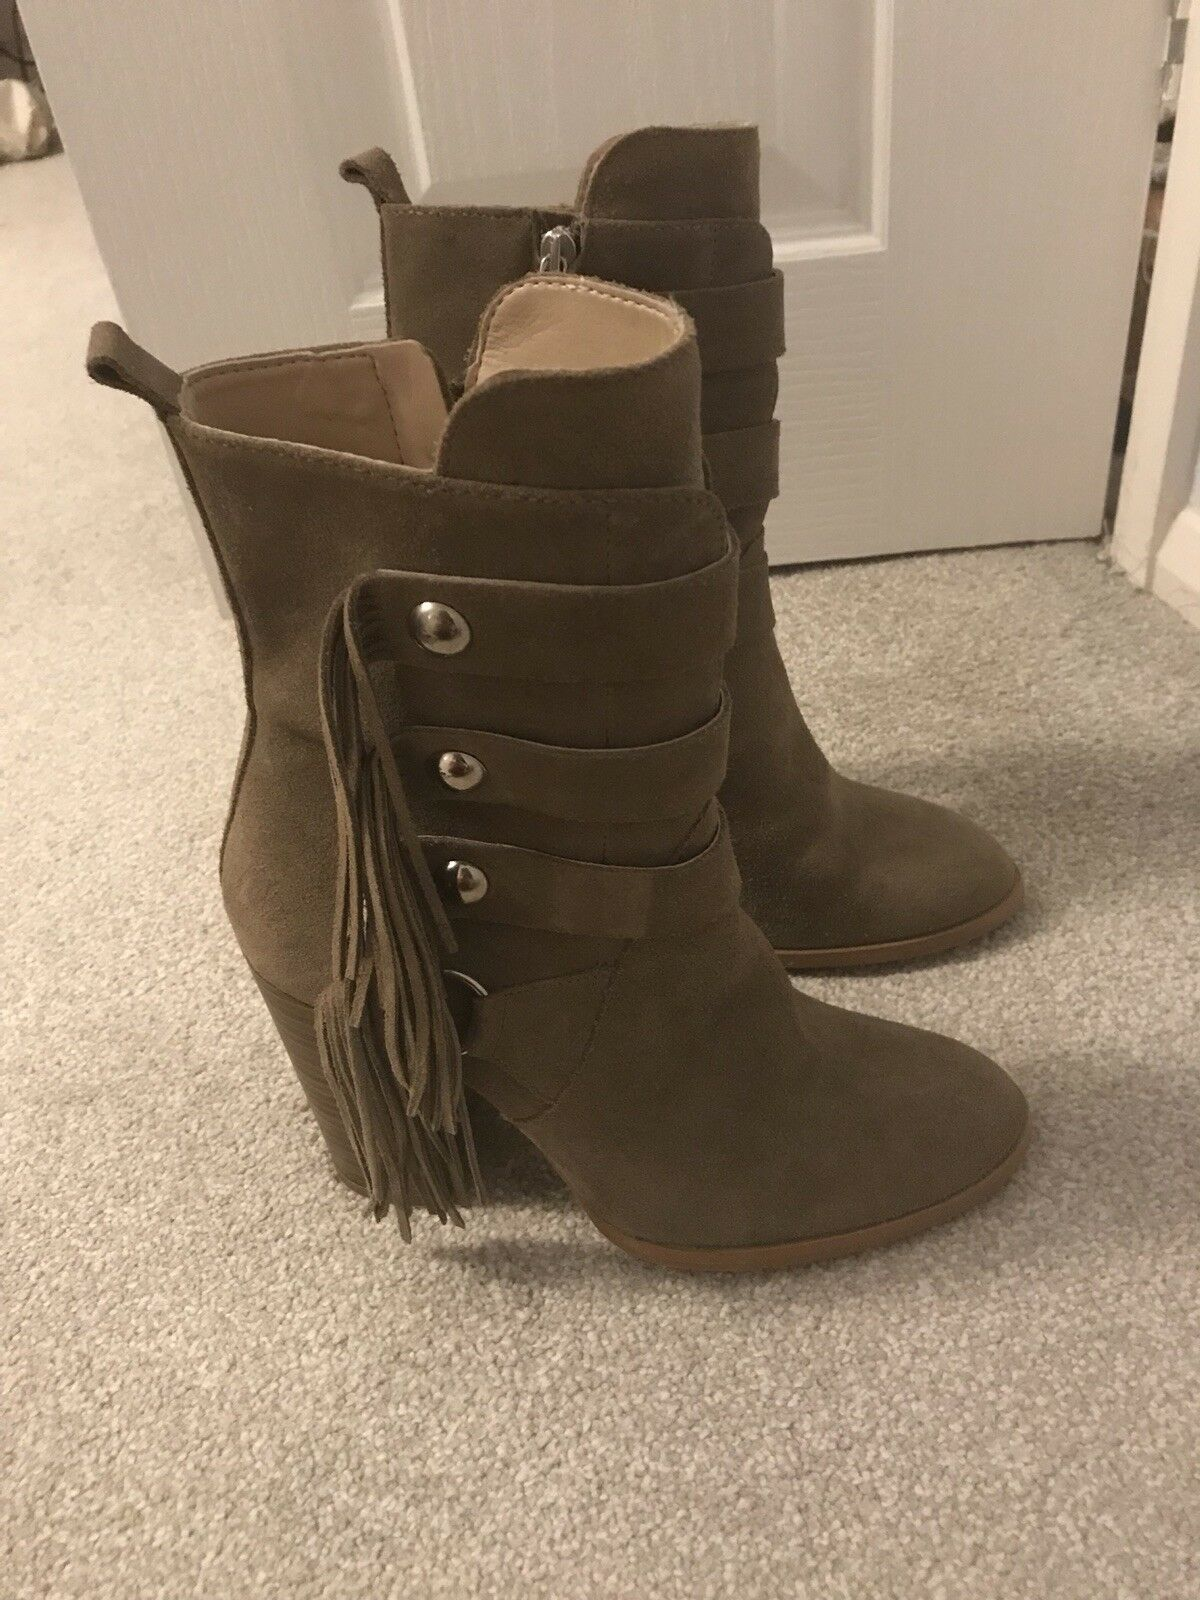 Brand new Zara Leather Boots size 38